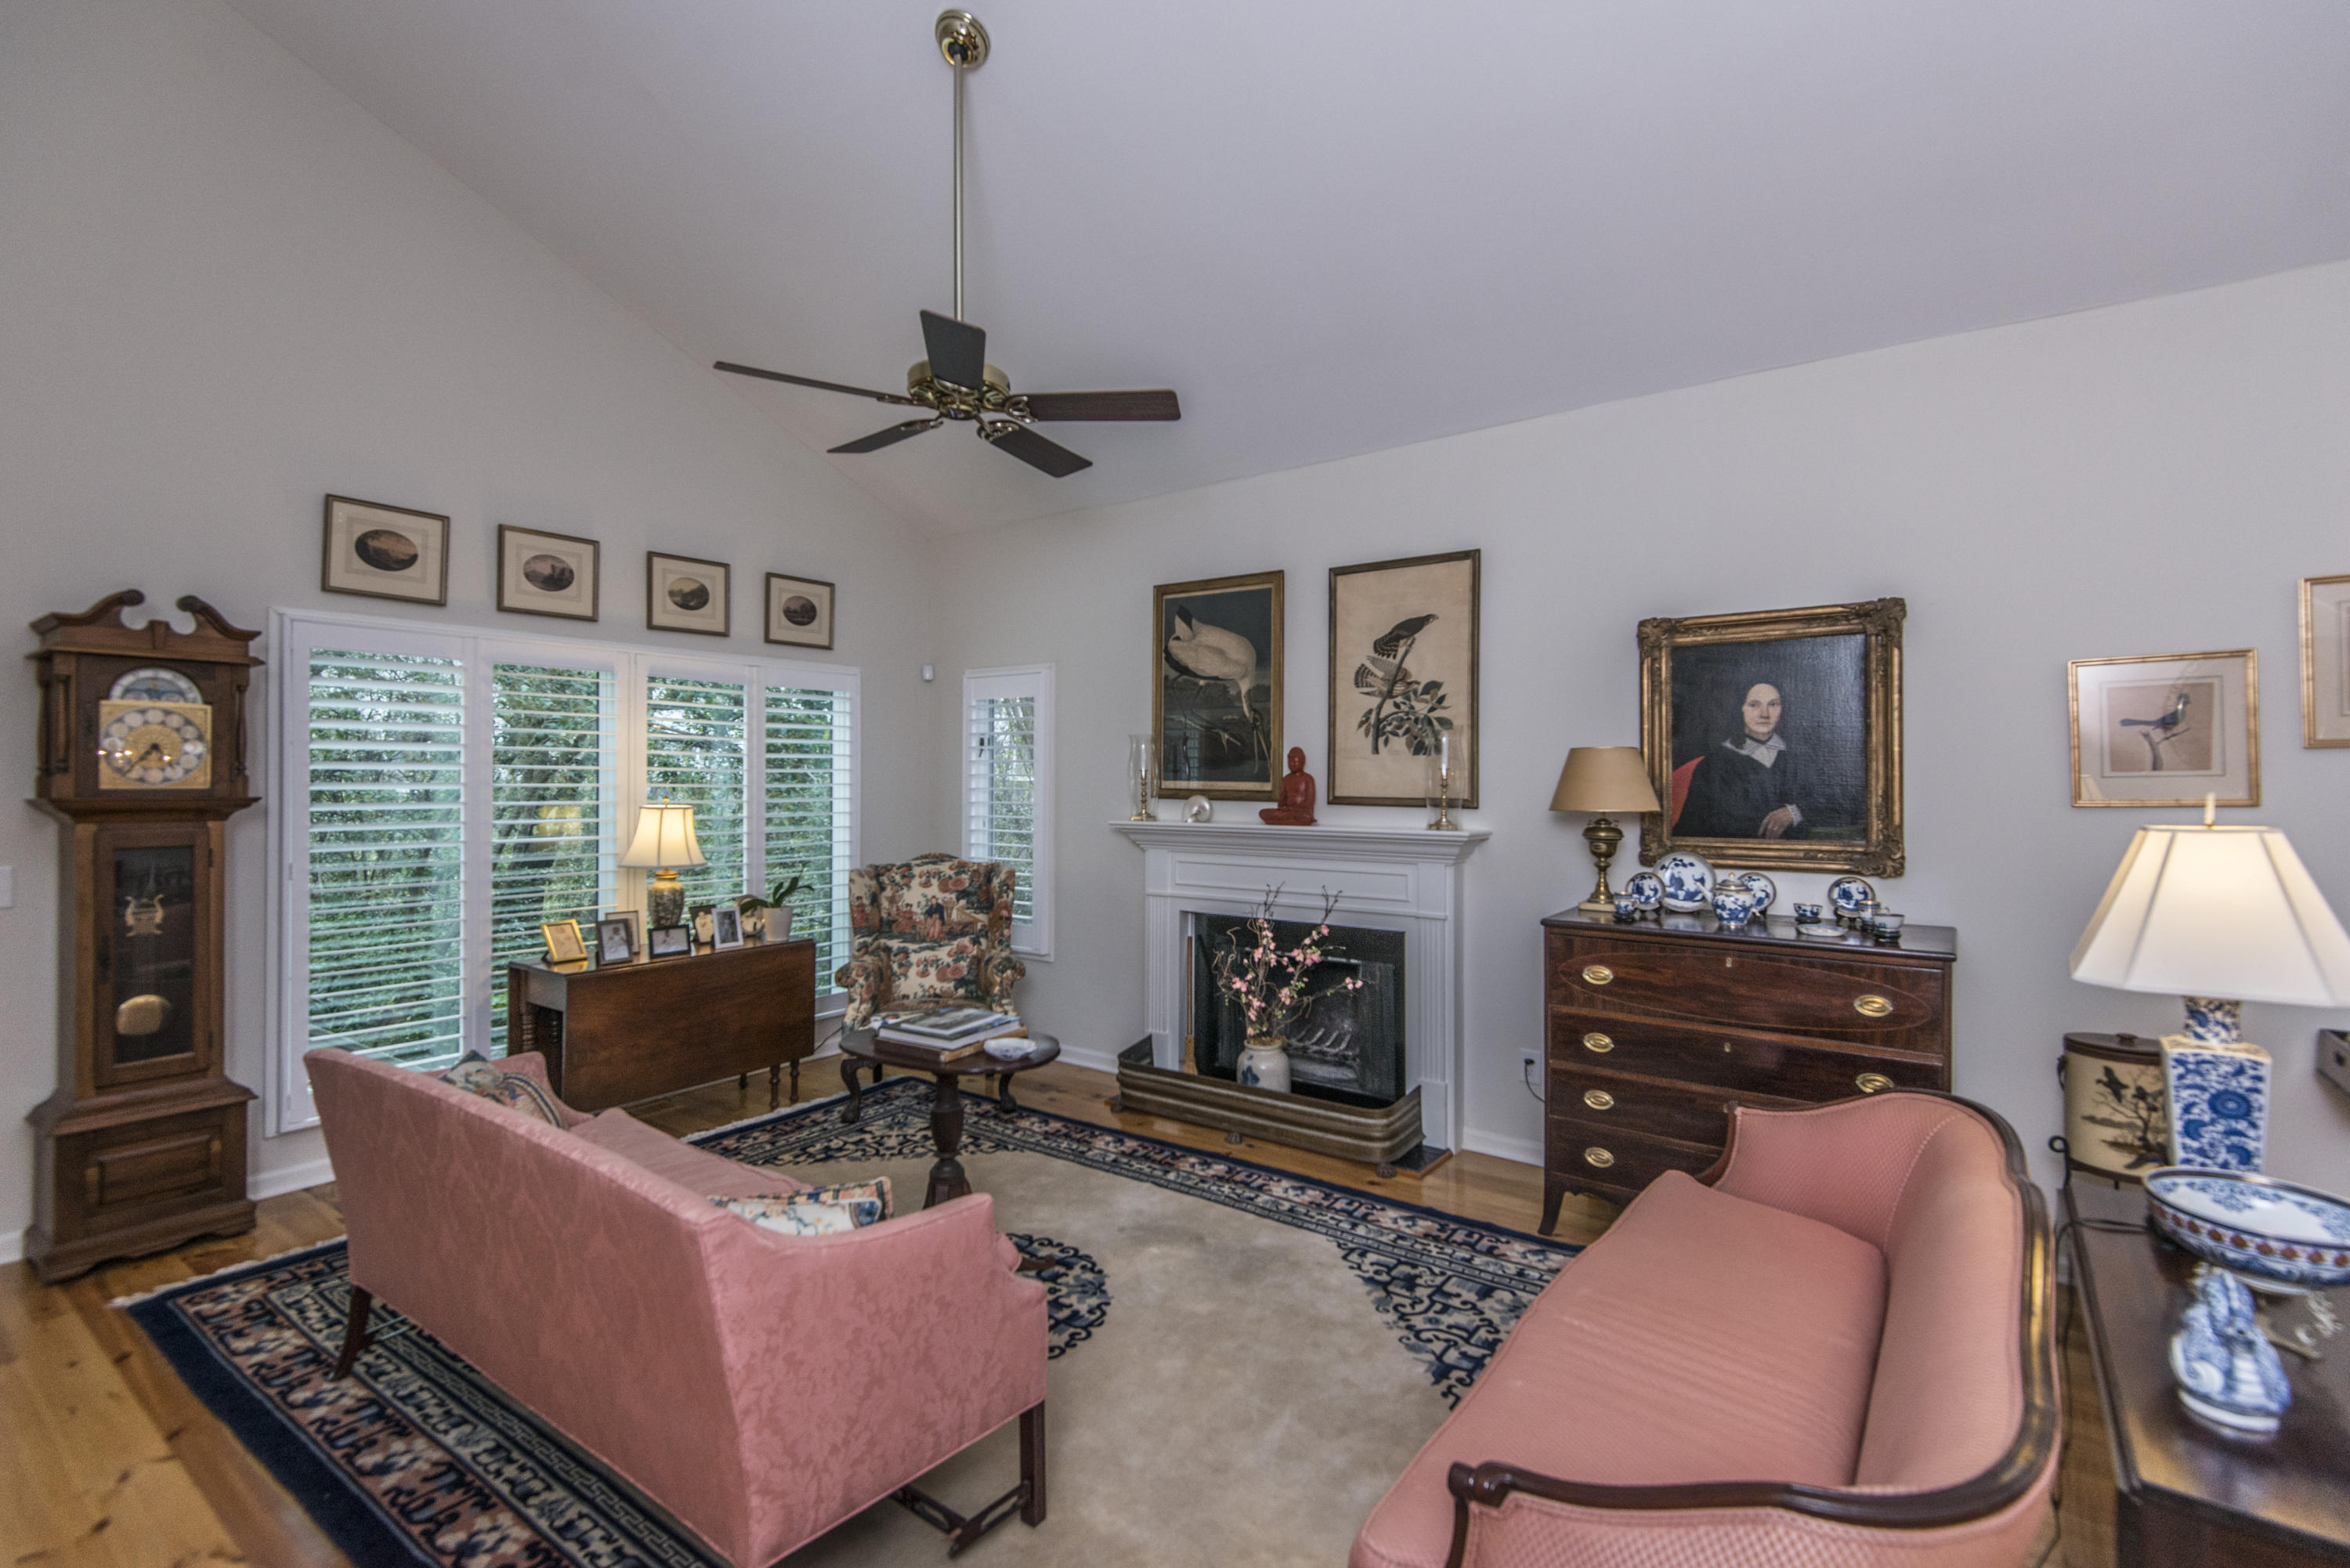 Wappoo Creek Place Homes For Sale - 26 Wappoo Creek Place, Charleston, SC - 31